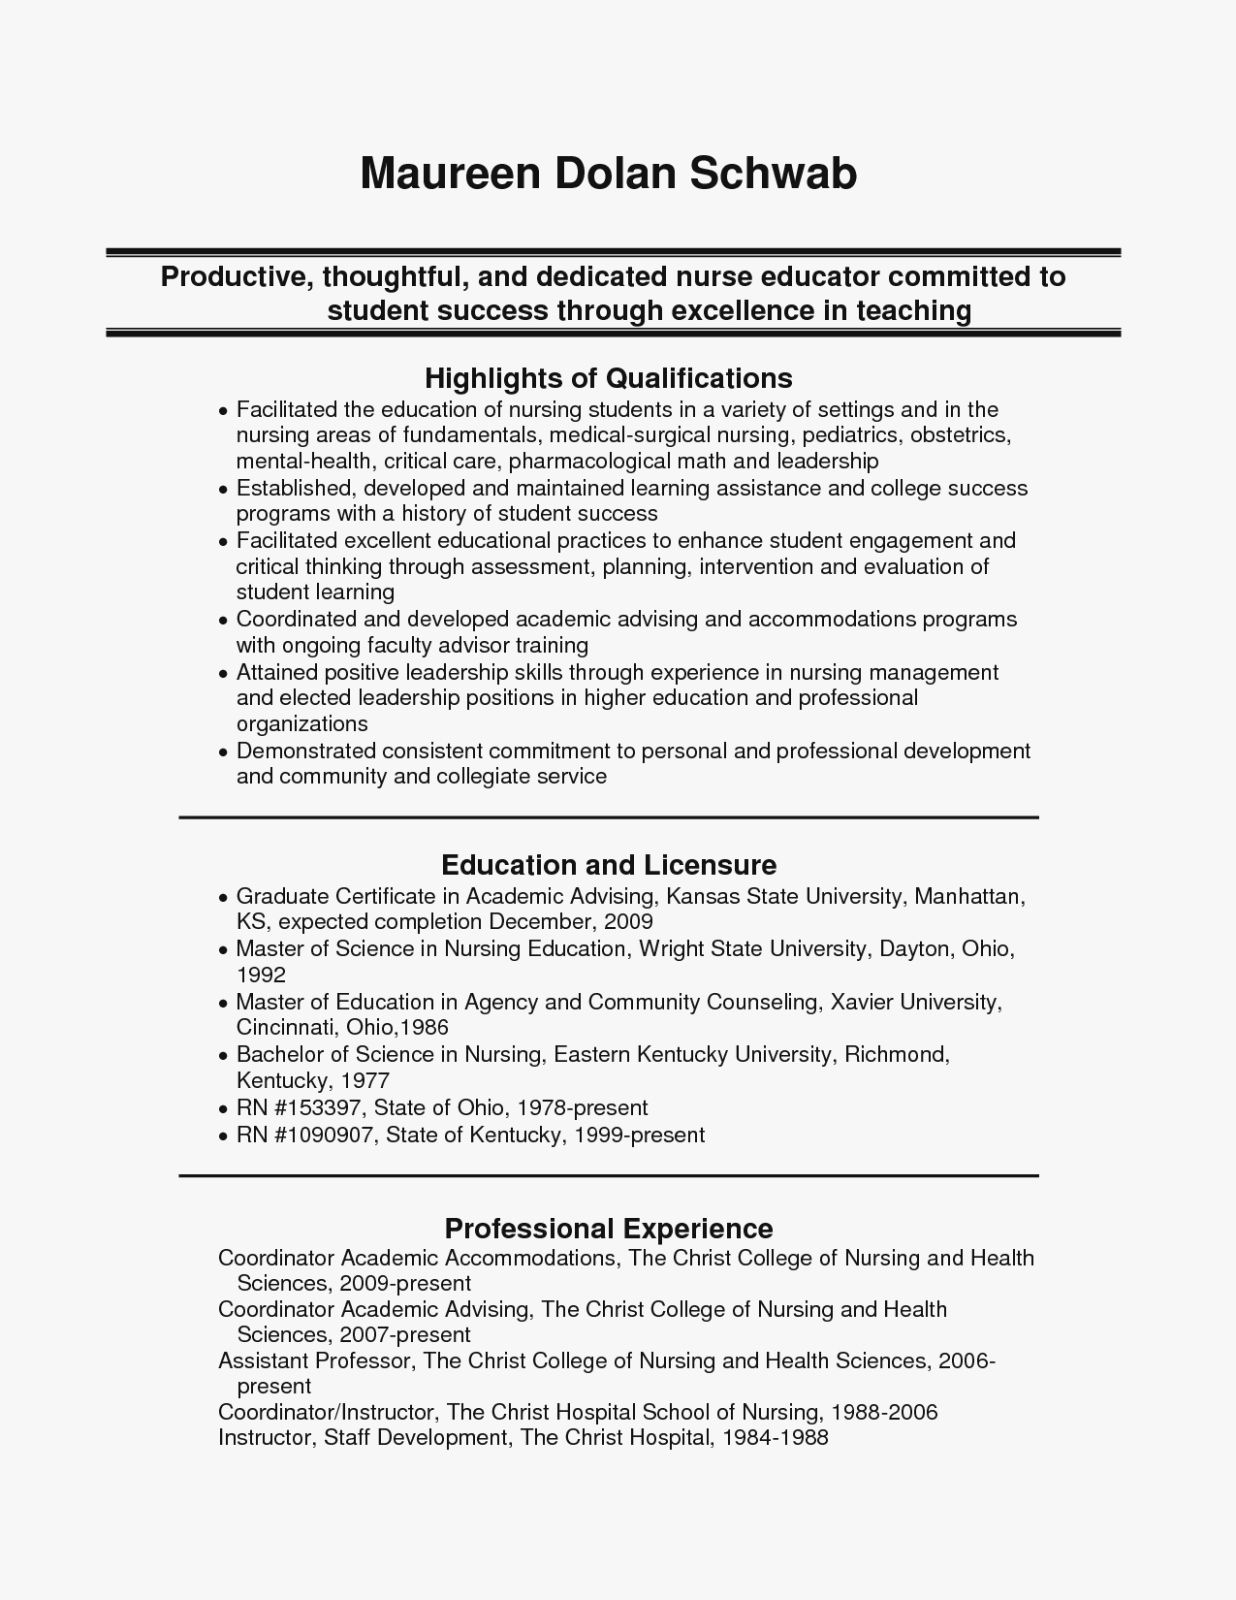 Nursing Clinical Experience Resume Best Of Top Five Trends In Nursing Nursing Resume Student Resume Template Student Nurse Resume